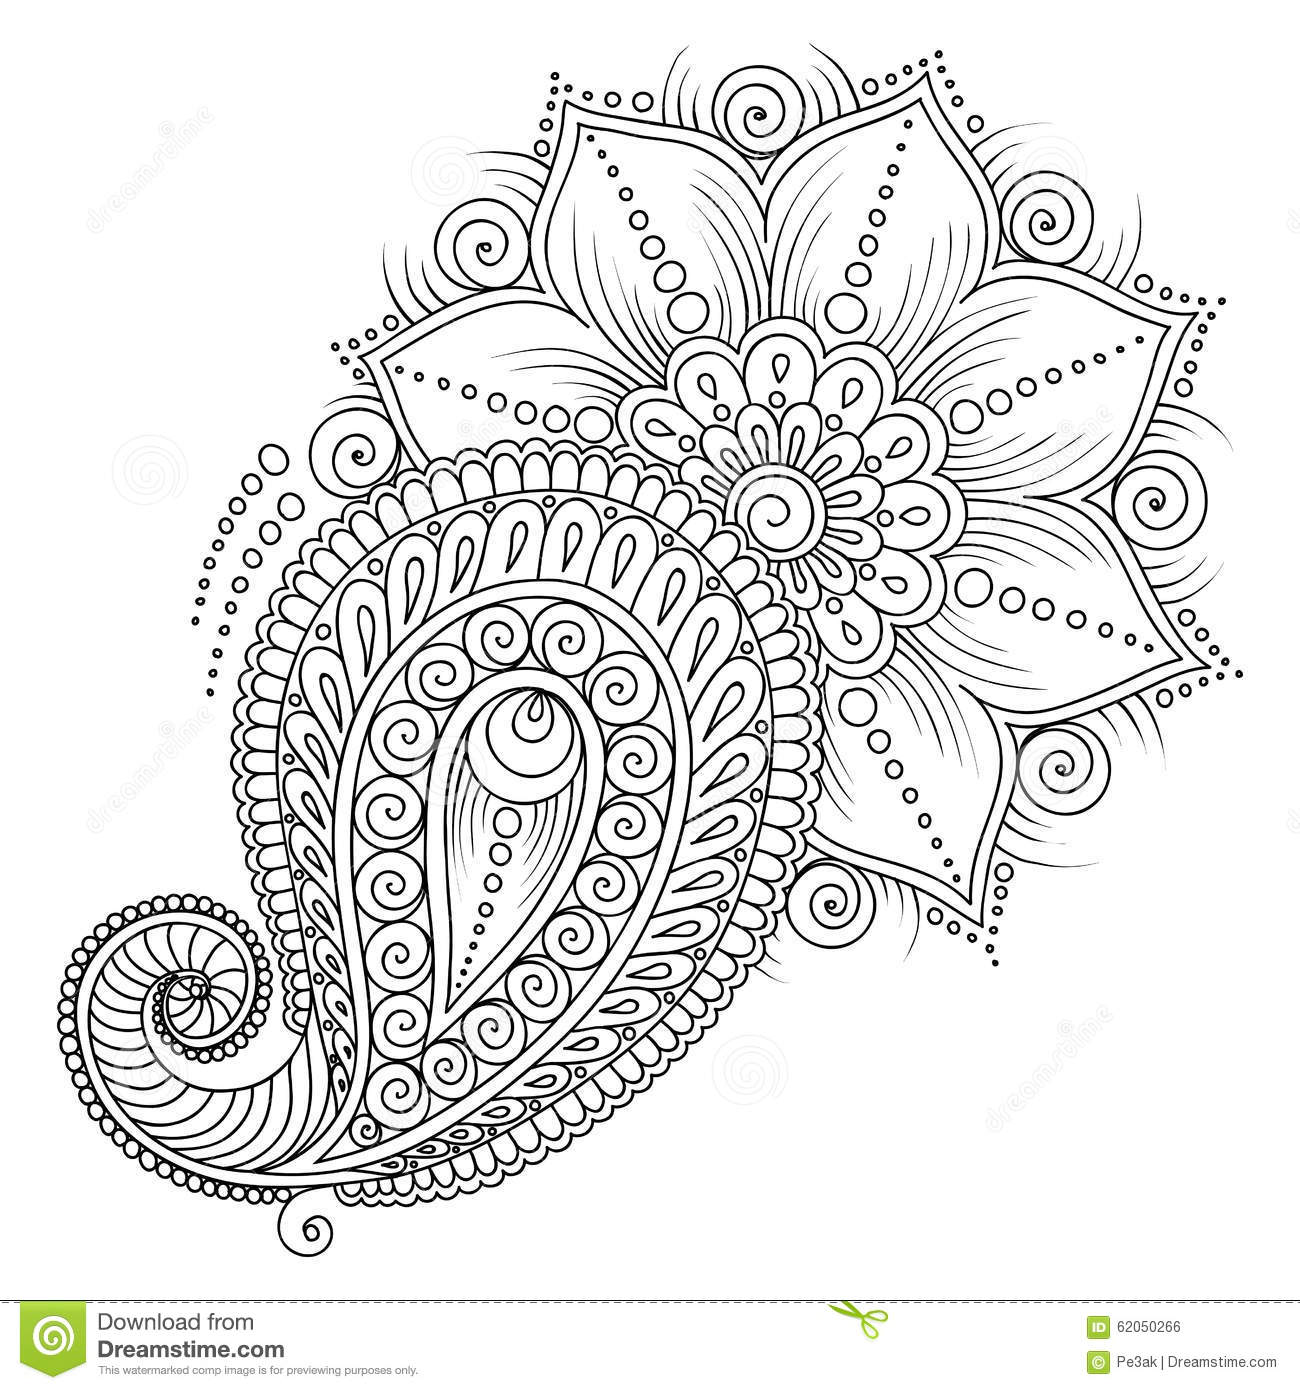 mehndi designs coloring book pages - photo#31